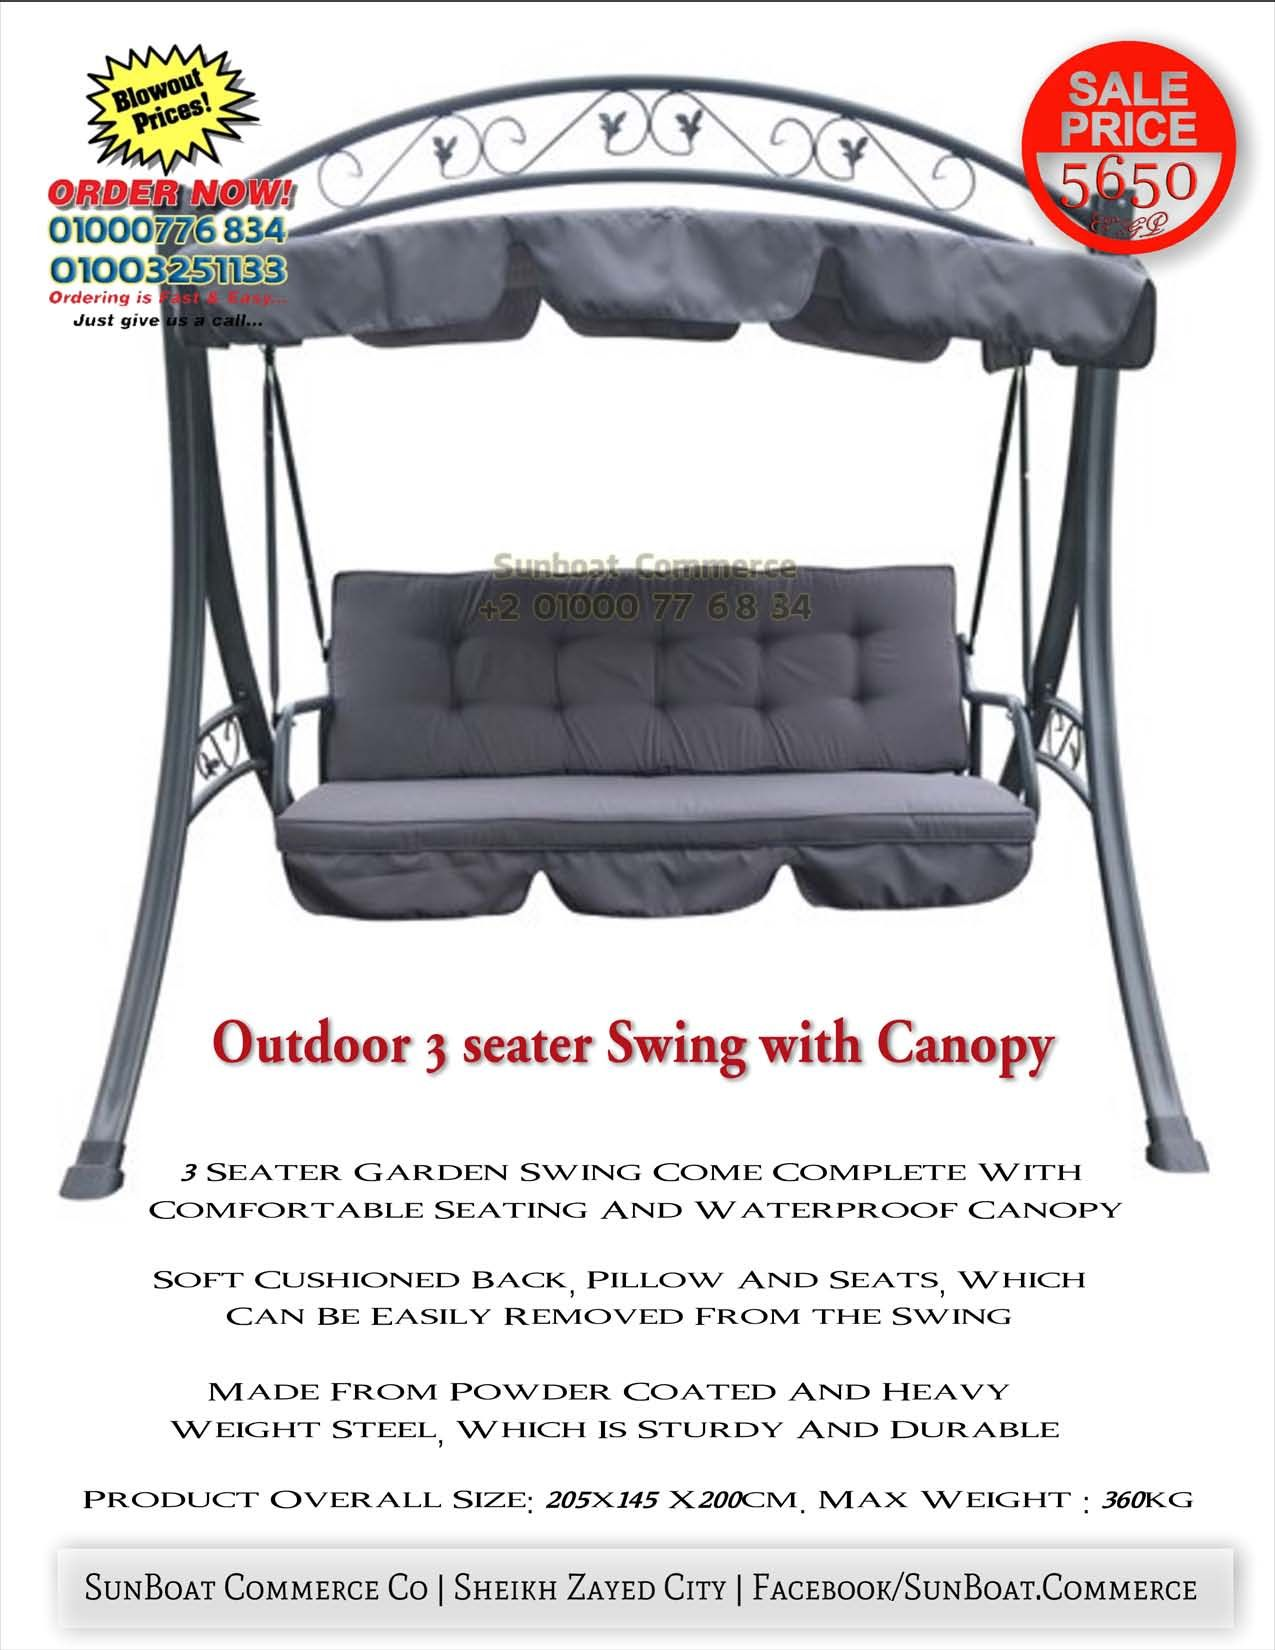 Outdoor seater Swing with Canopy More Info CALL